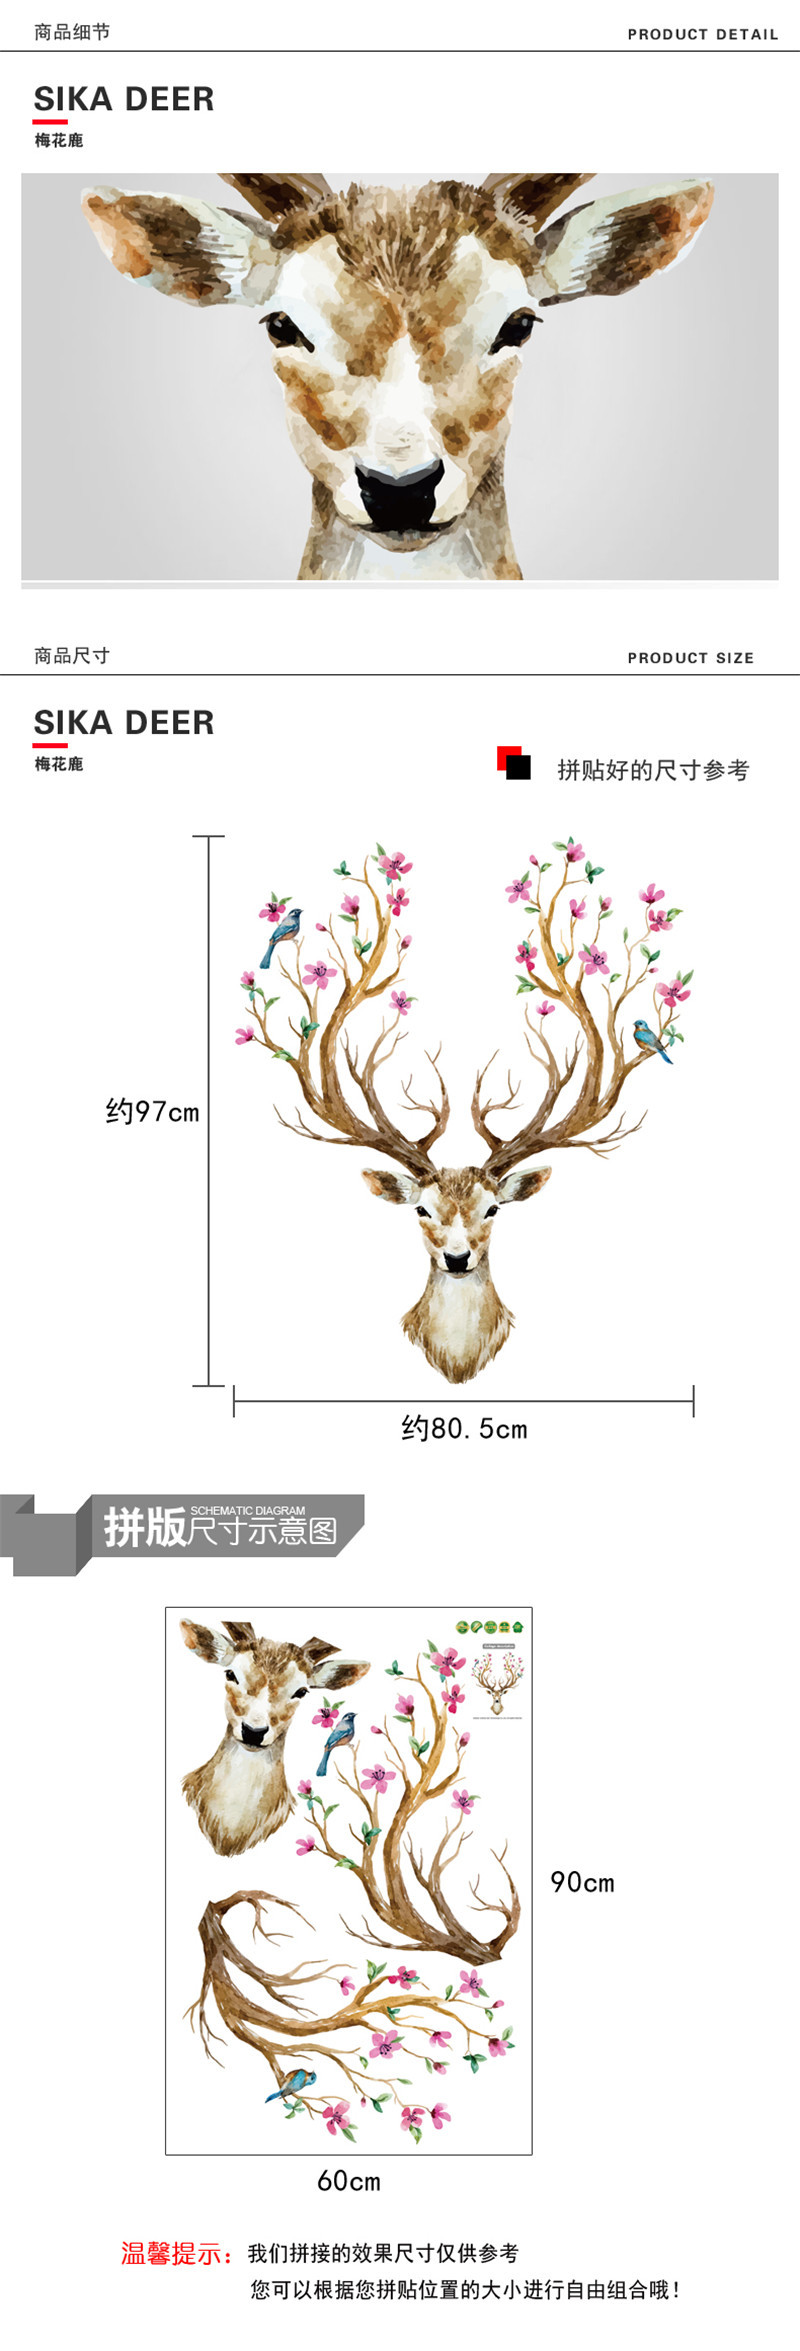 Vintage sika deer spotted deer wall stickers living room bedroom getsubject aeproducttsubject nvjuhfo Choice Image